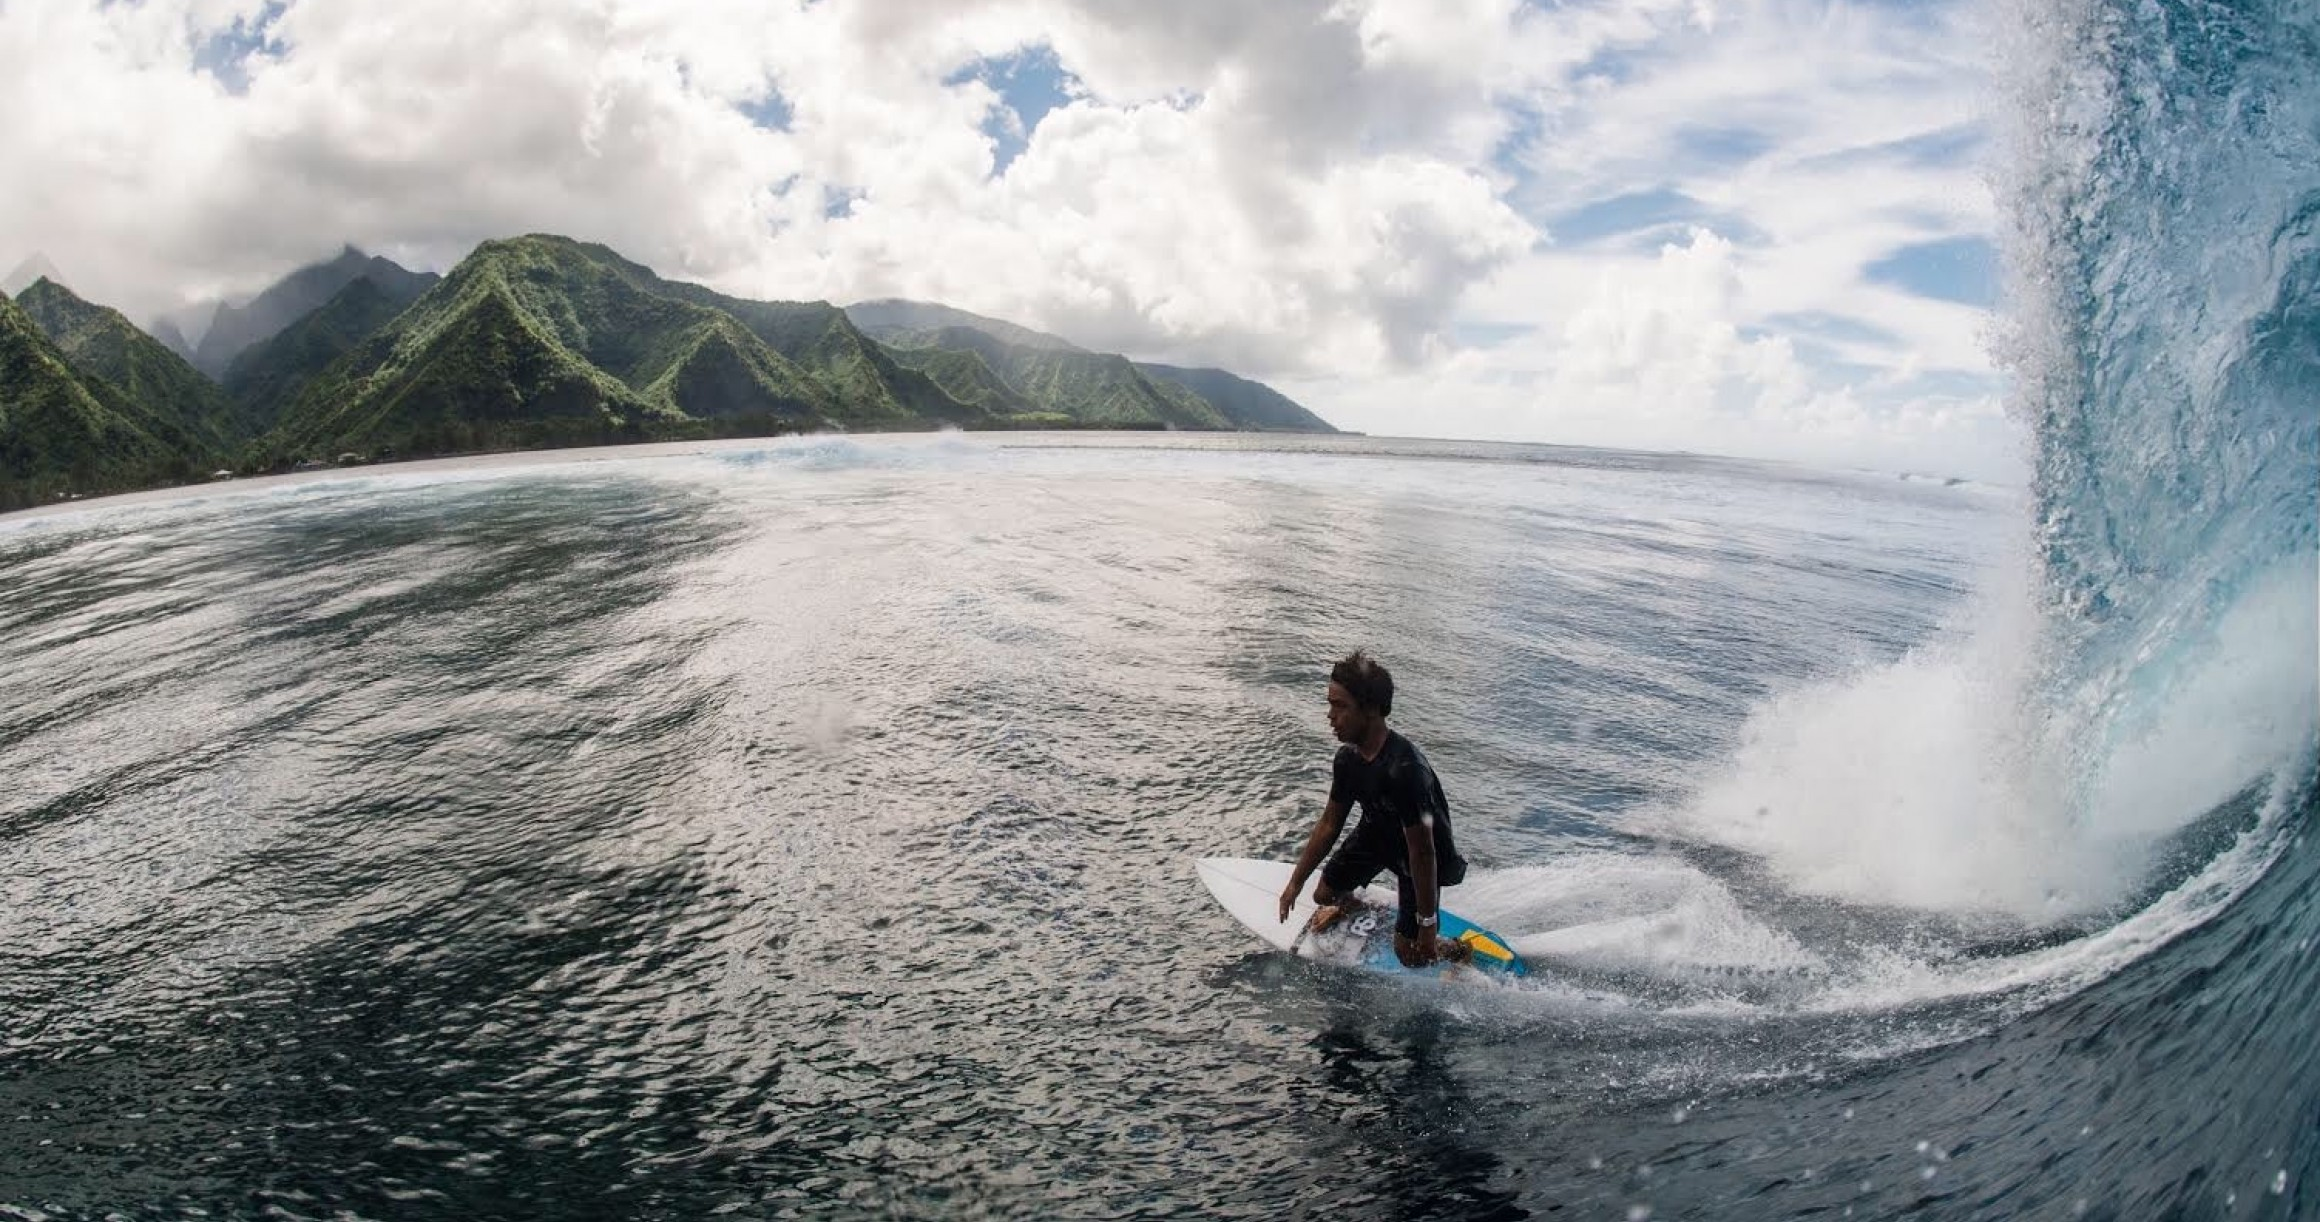 Underdogs Rise Up for The Vans ISA World Surfing Games 2019 - Magicseaweed.com